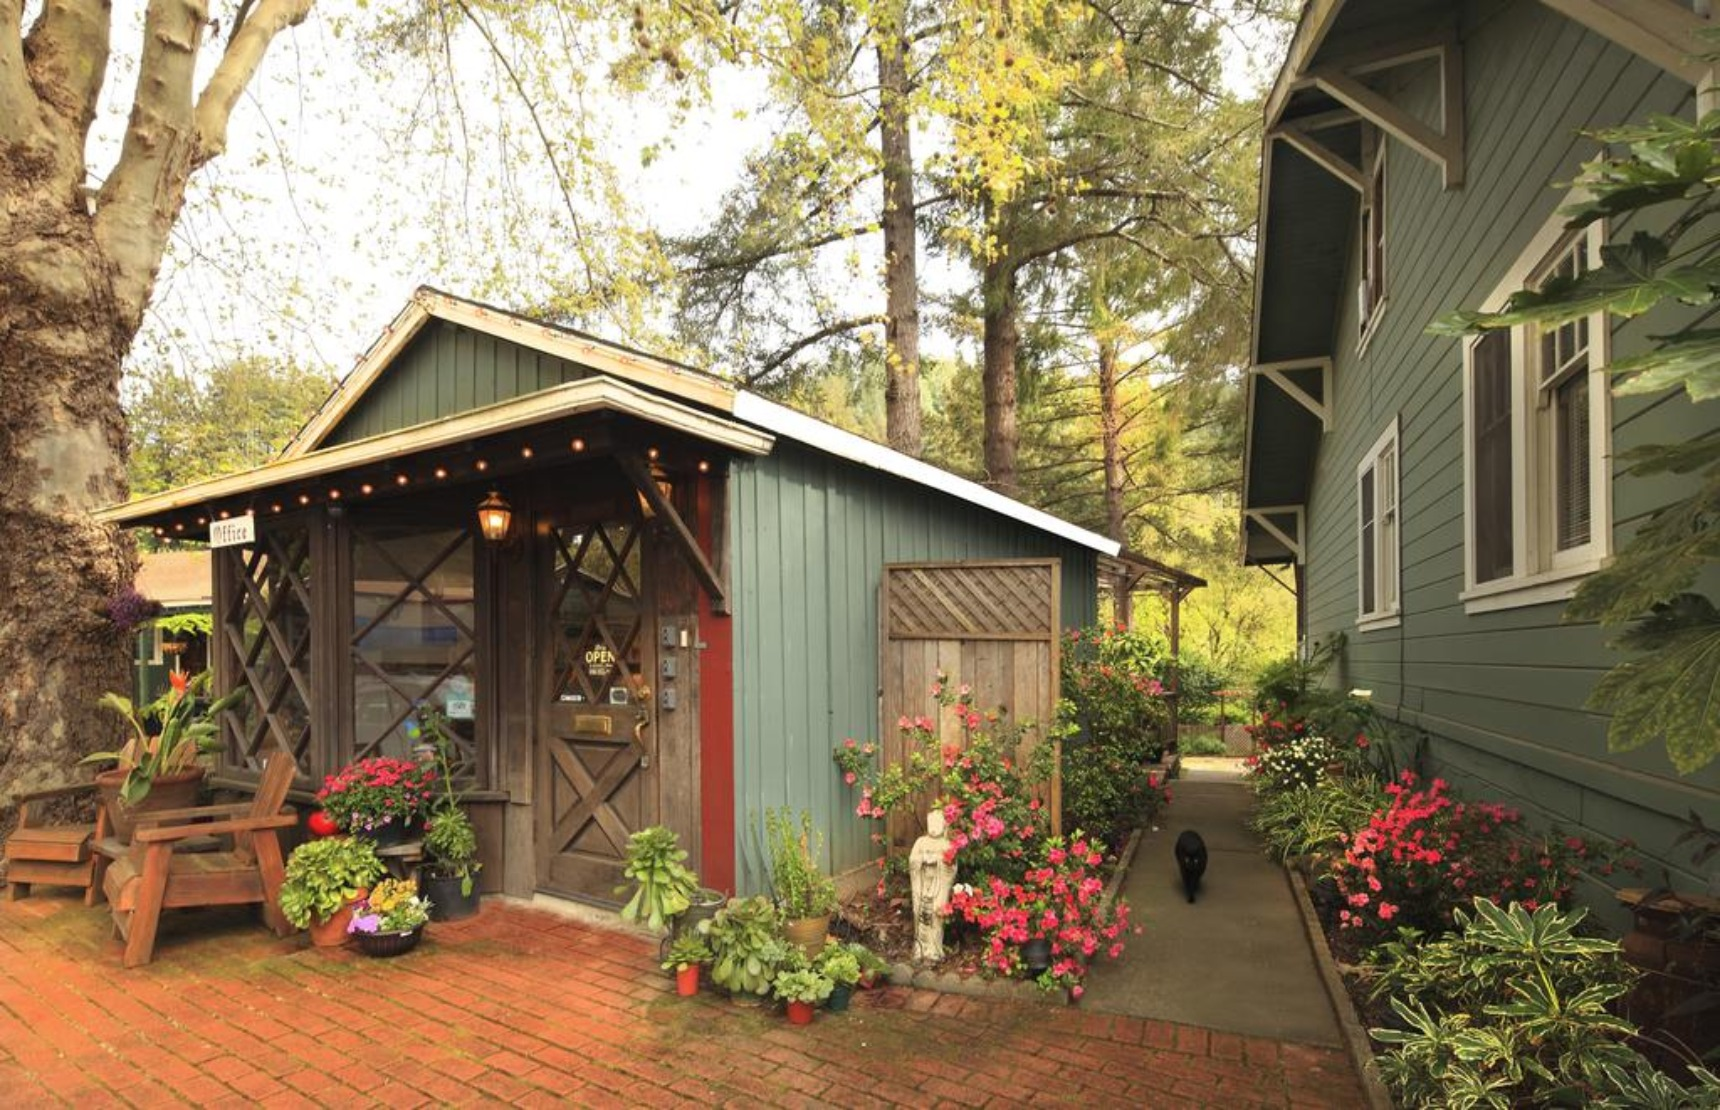 A close up of a flower garden in front of a house at Inn on the Russian River.